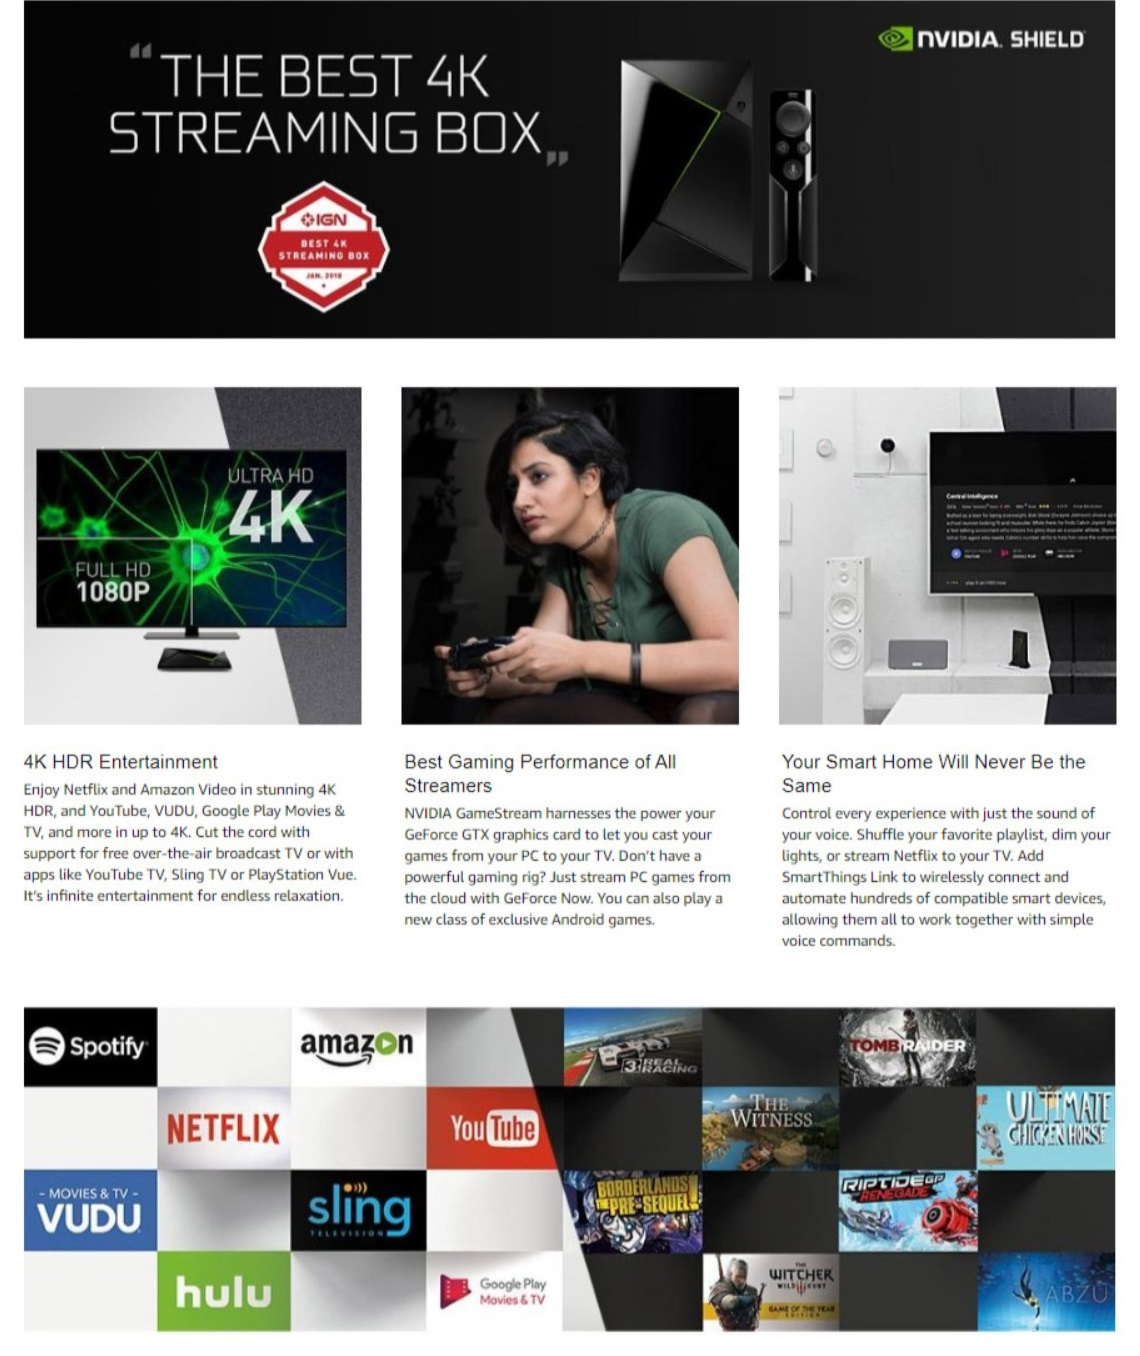 NVIDIA Shield TV Streaming Media Player with Remote 4K HDR Support 16GB  Storage